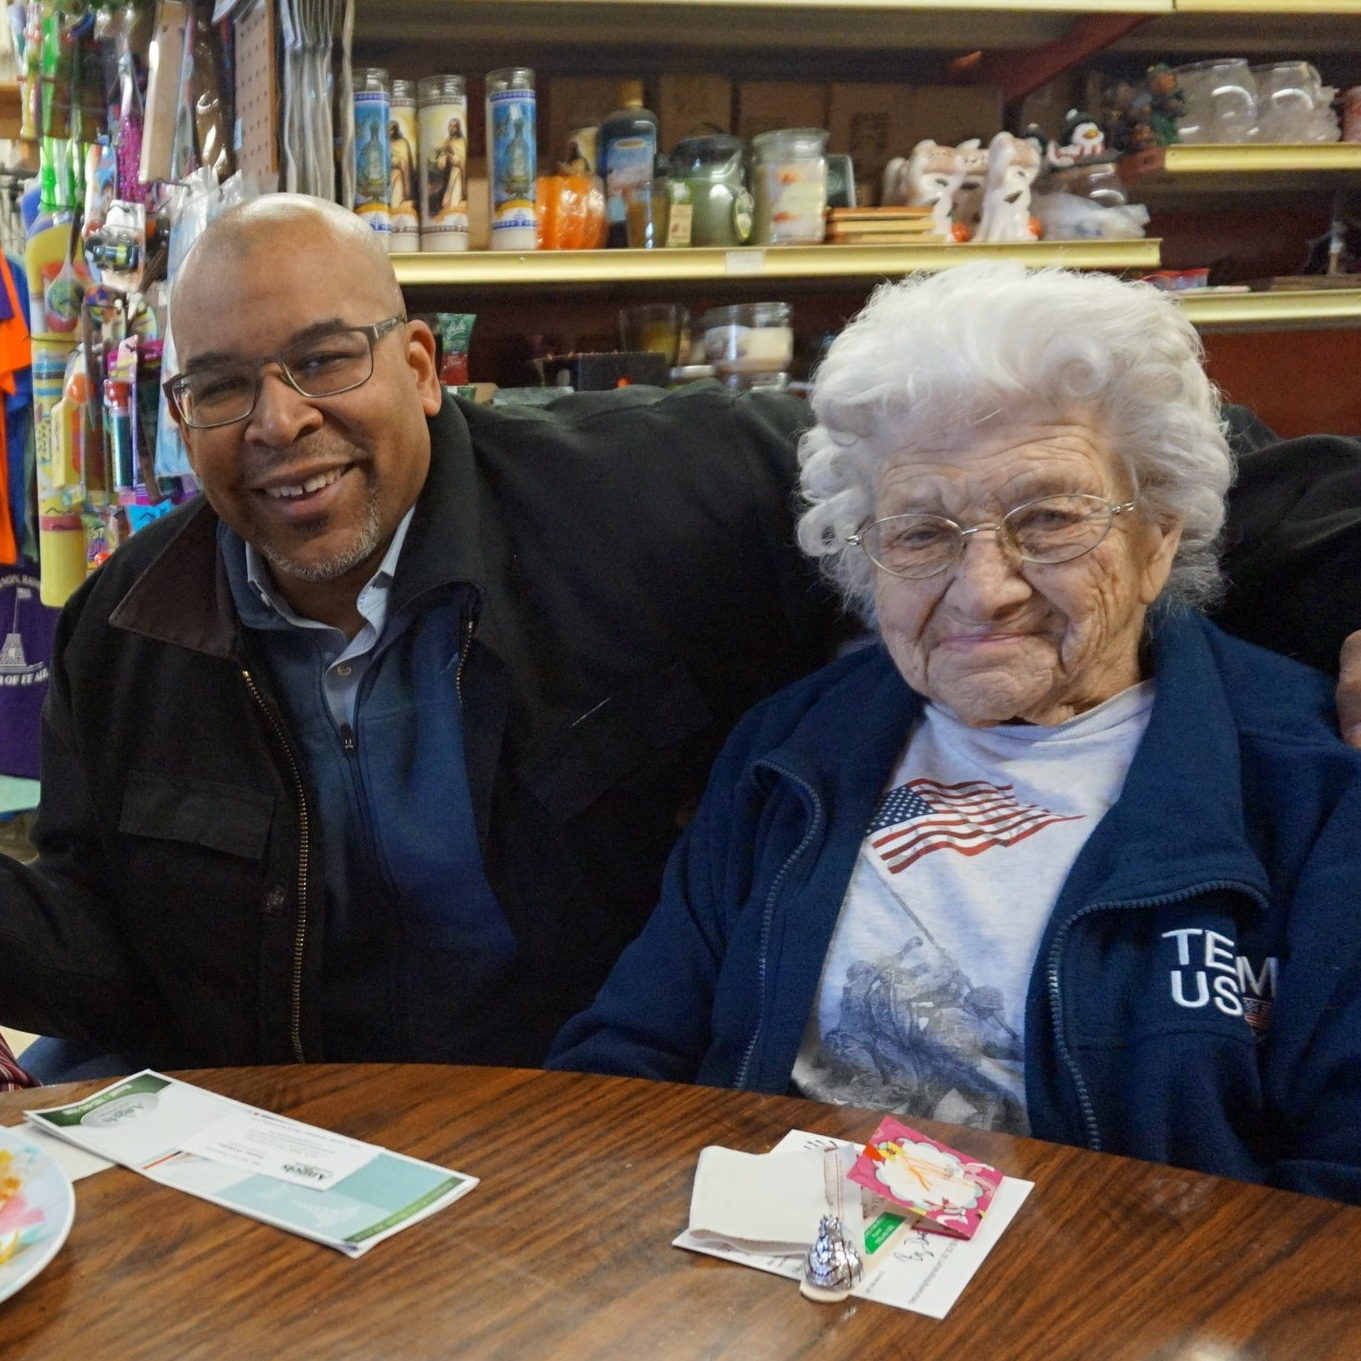 Kansas - For Valentines Day '16, I staged a Hug and High5 Party at the heart- geographic center - of the country in Lebanon, KS. There, I met these two lifelong friends one is 100 and the other is 99-years old.